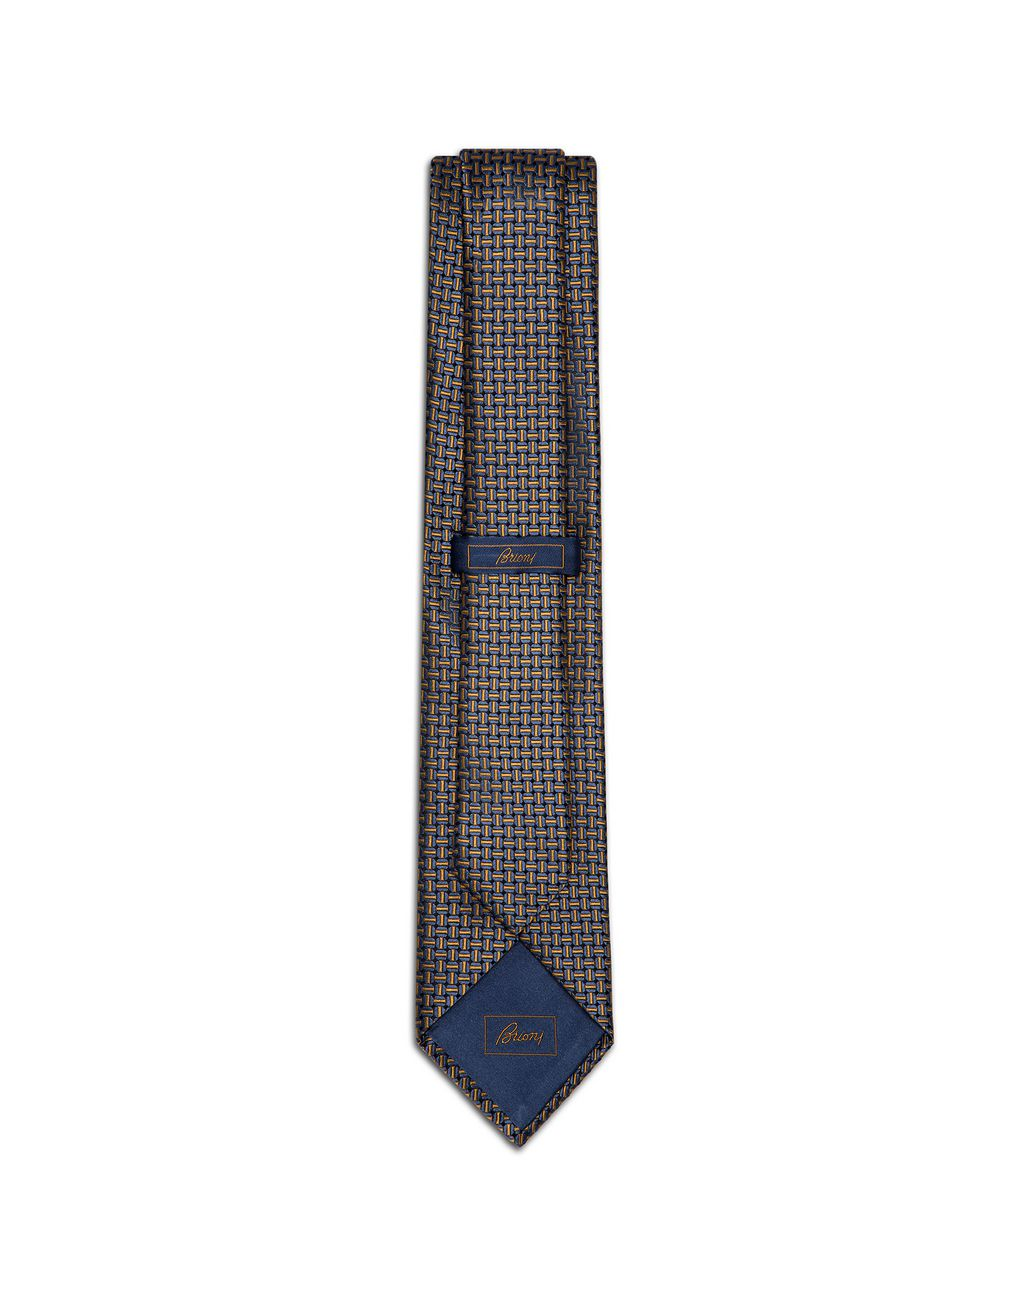 BRIONI Cravate bleu marine et moutarde à motif Cravate Homme r